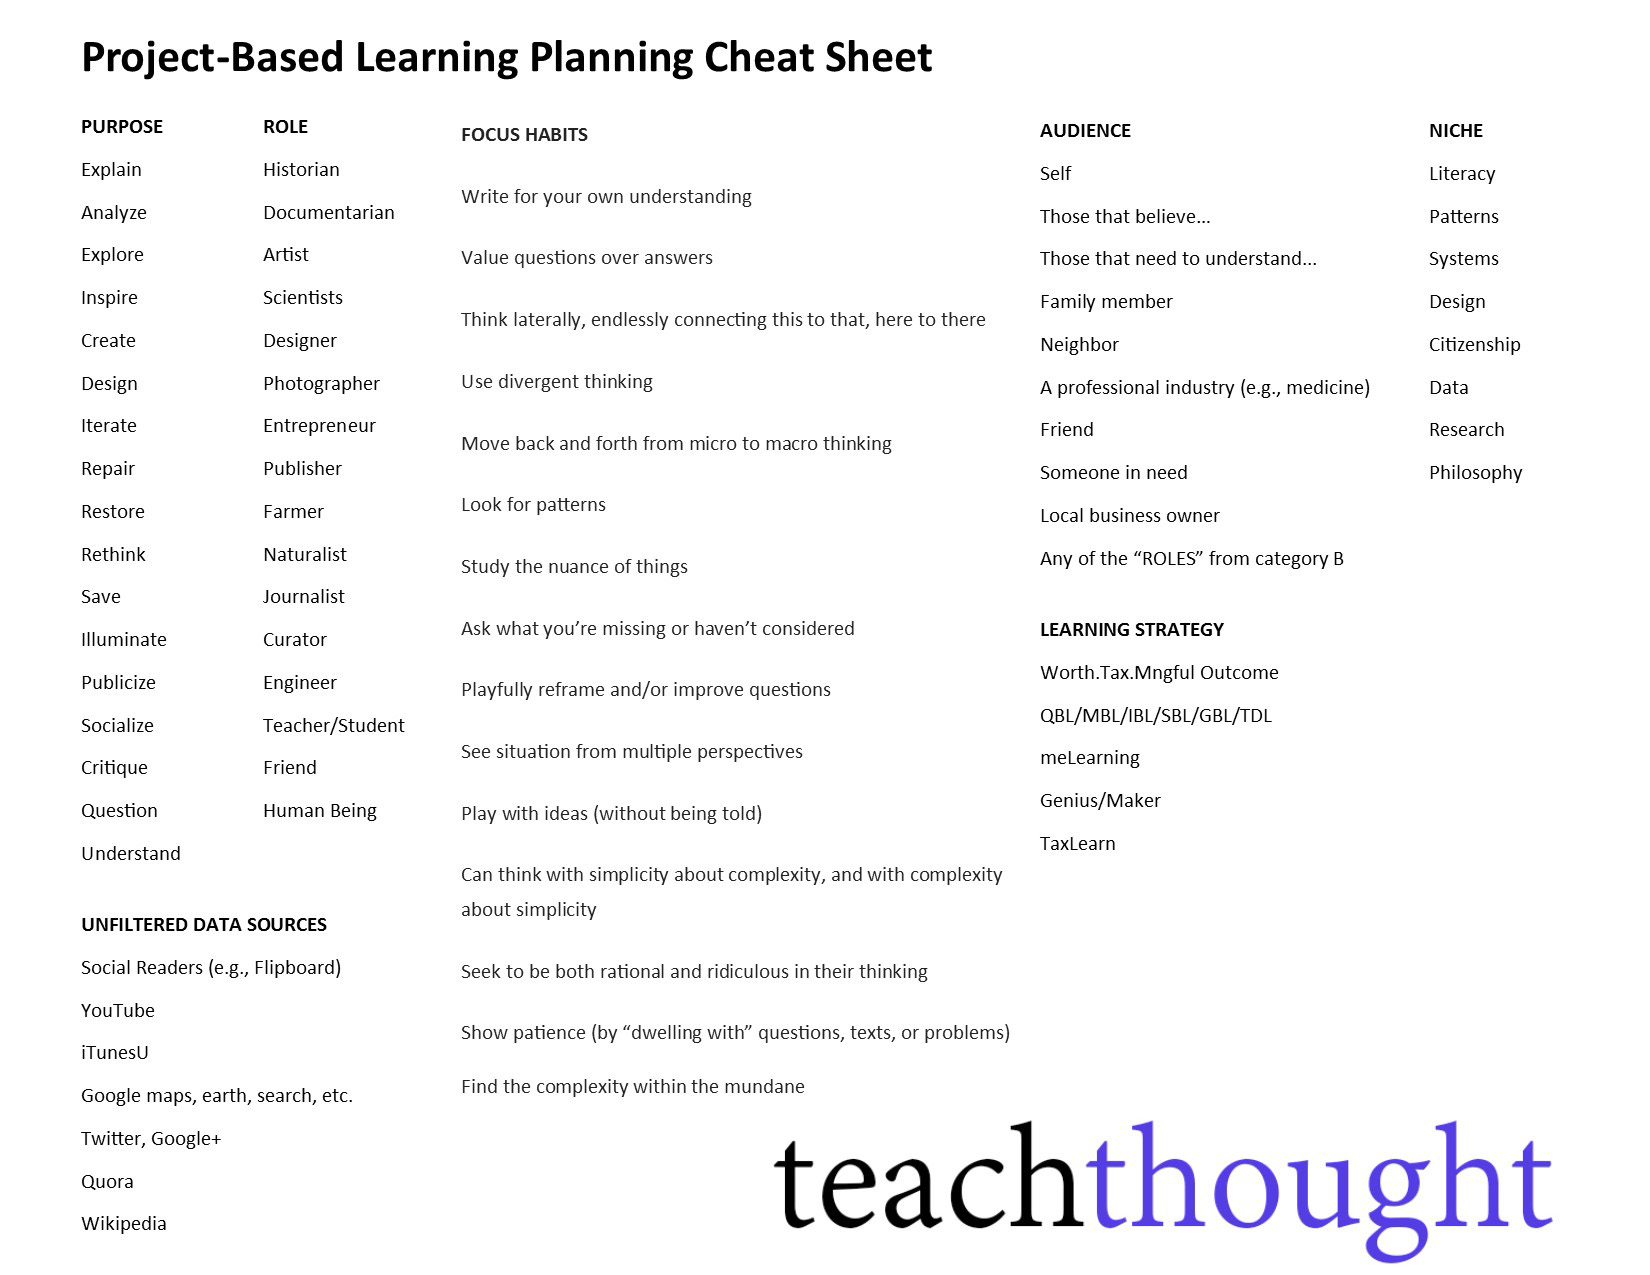 A Project-Based Learning Cheat Sheet For Authentic Learning